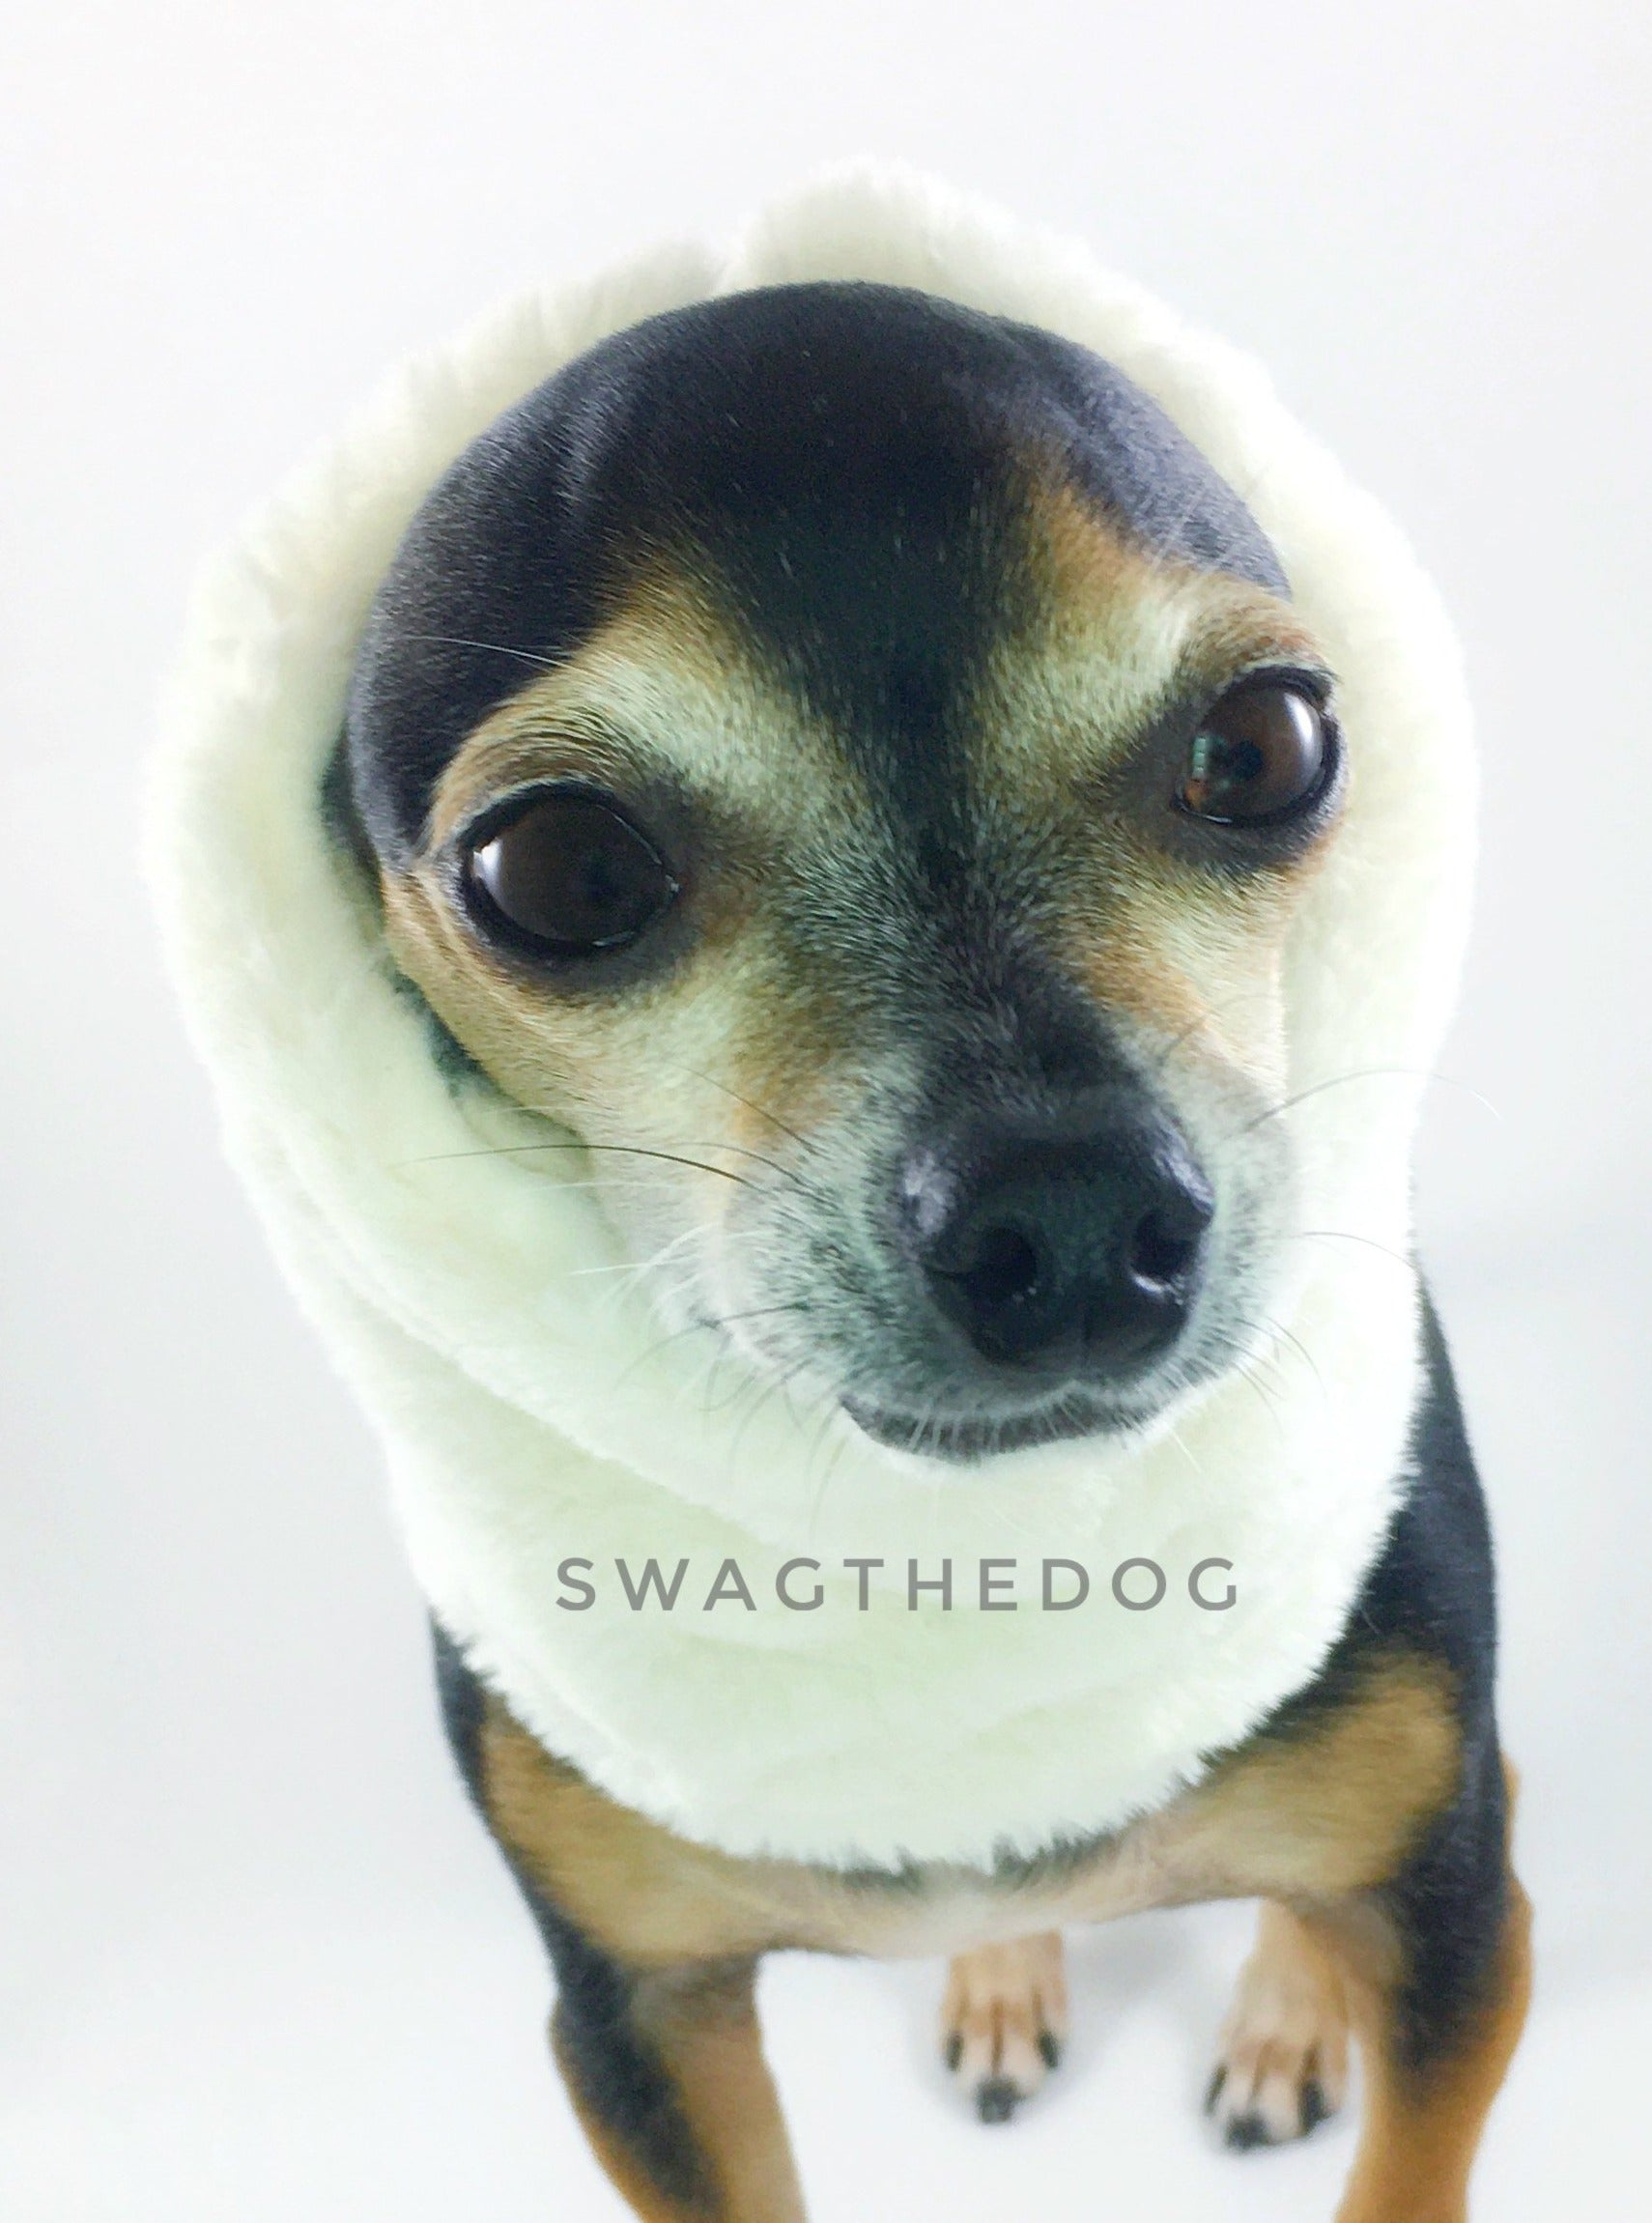 Furberry Swagsnood - Close-up face view of Hugo, Cute Chihuahua Dog wearing cream faux fur side